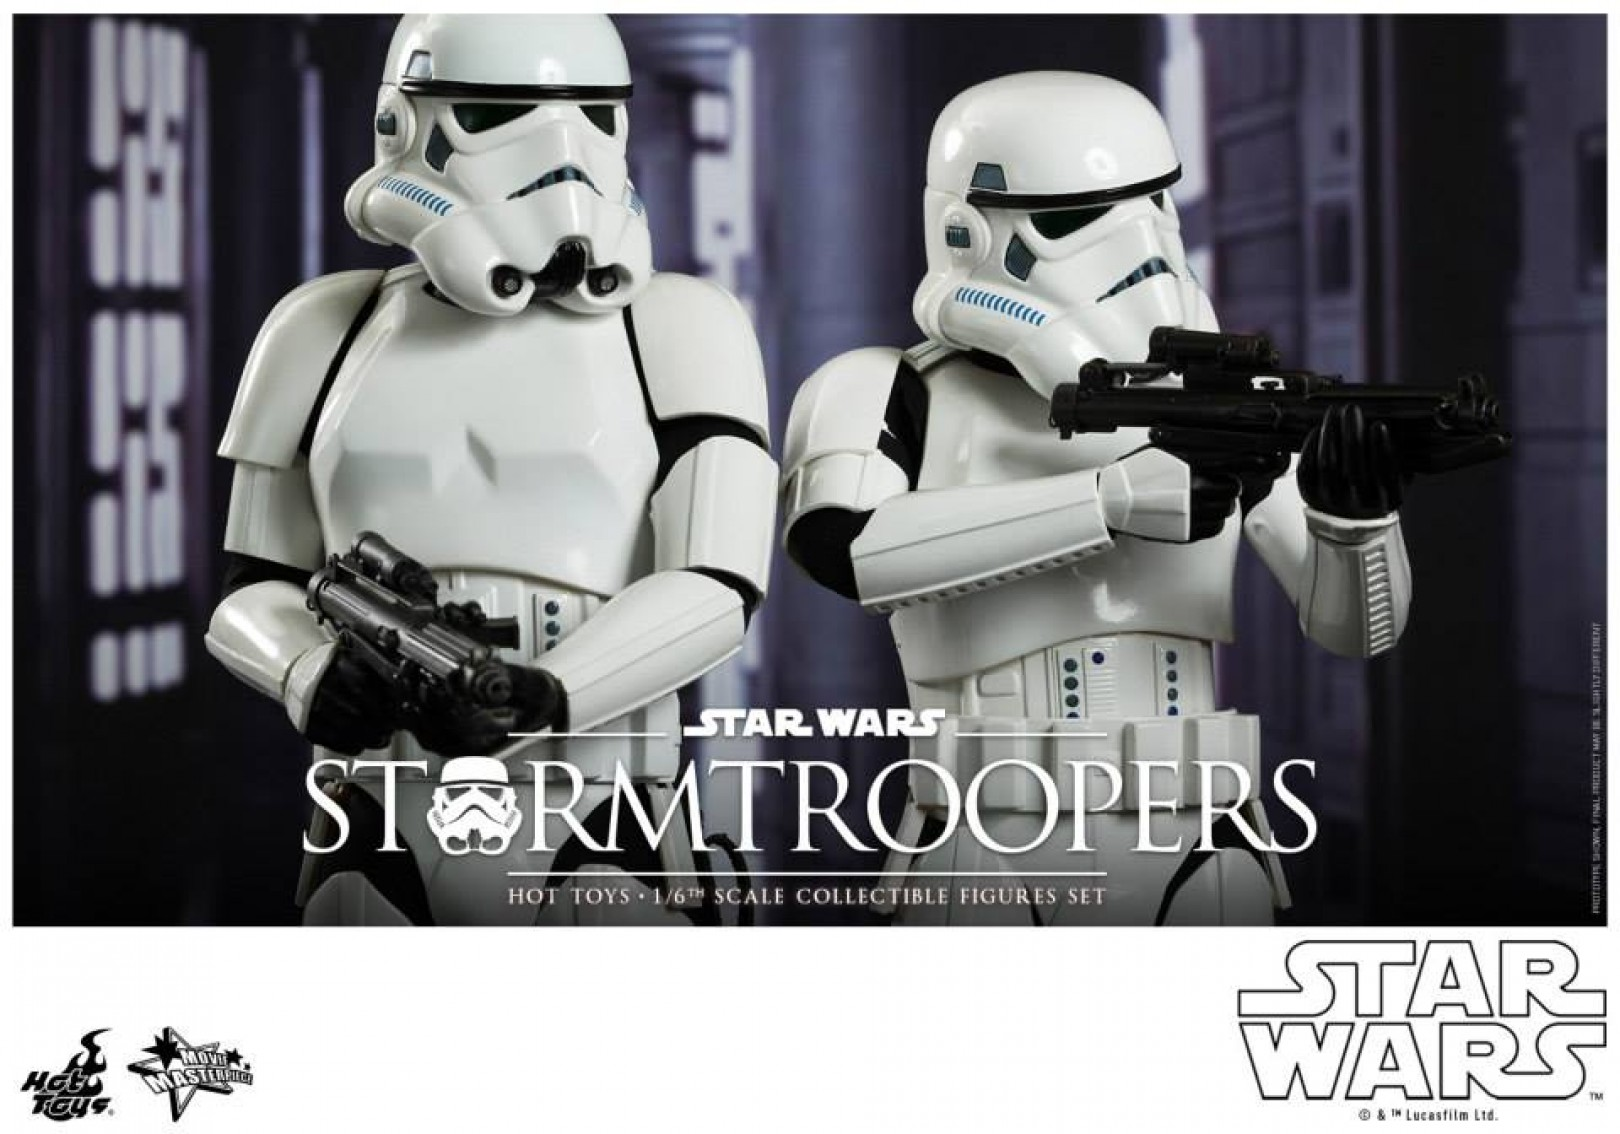 Star Wars Episode Iv 1 6th Scale Stormtroopers Collectible Set Collectimag